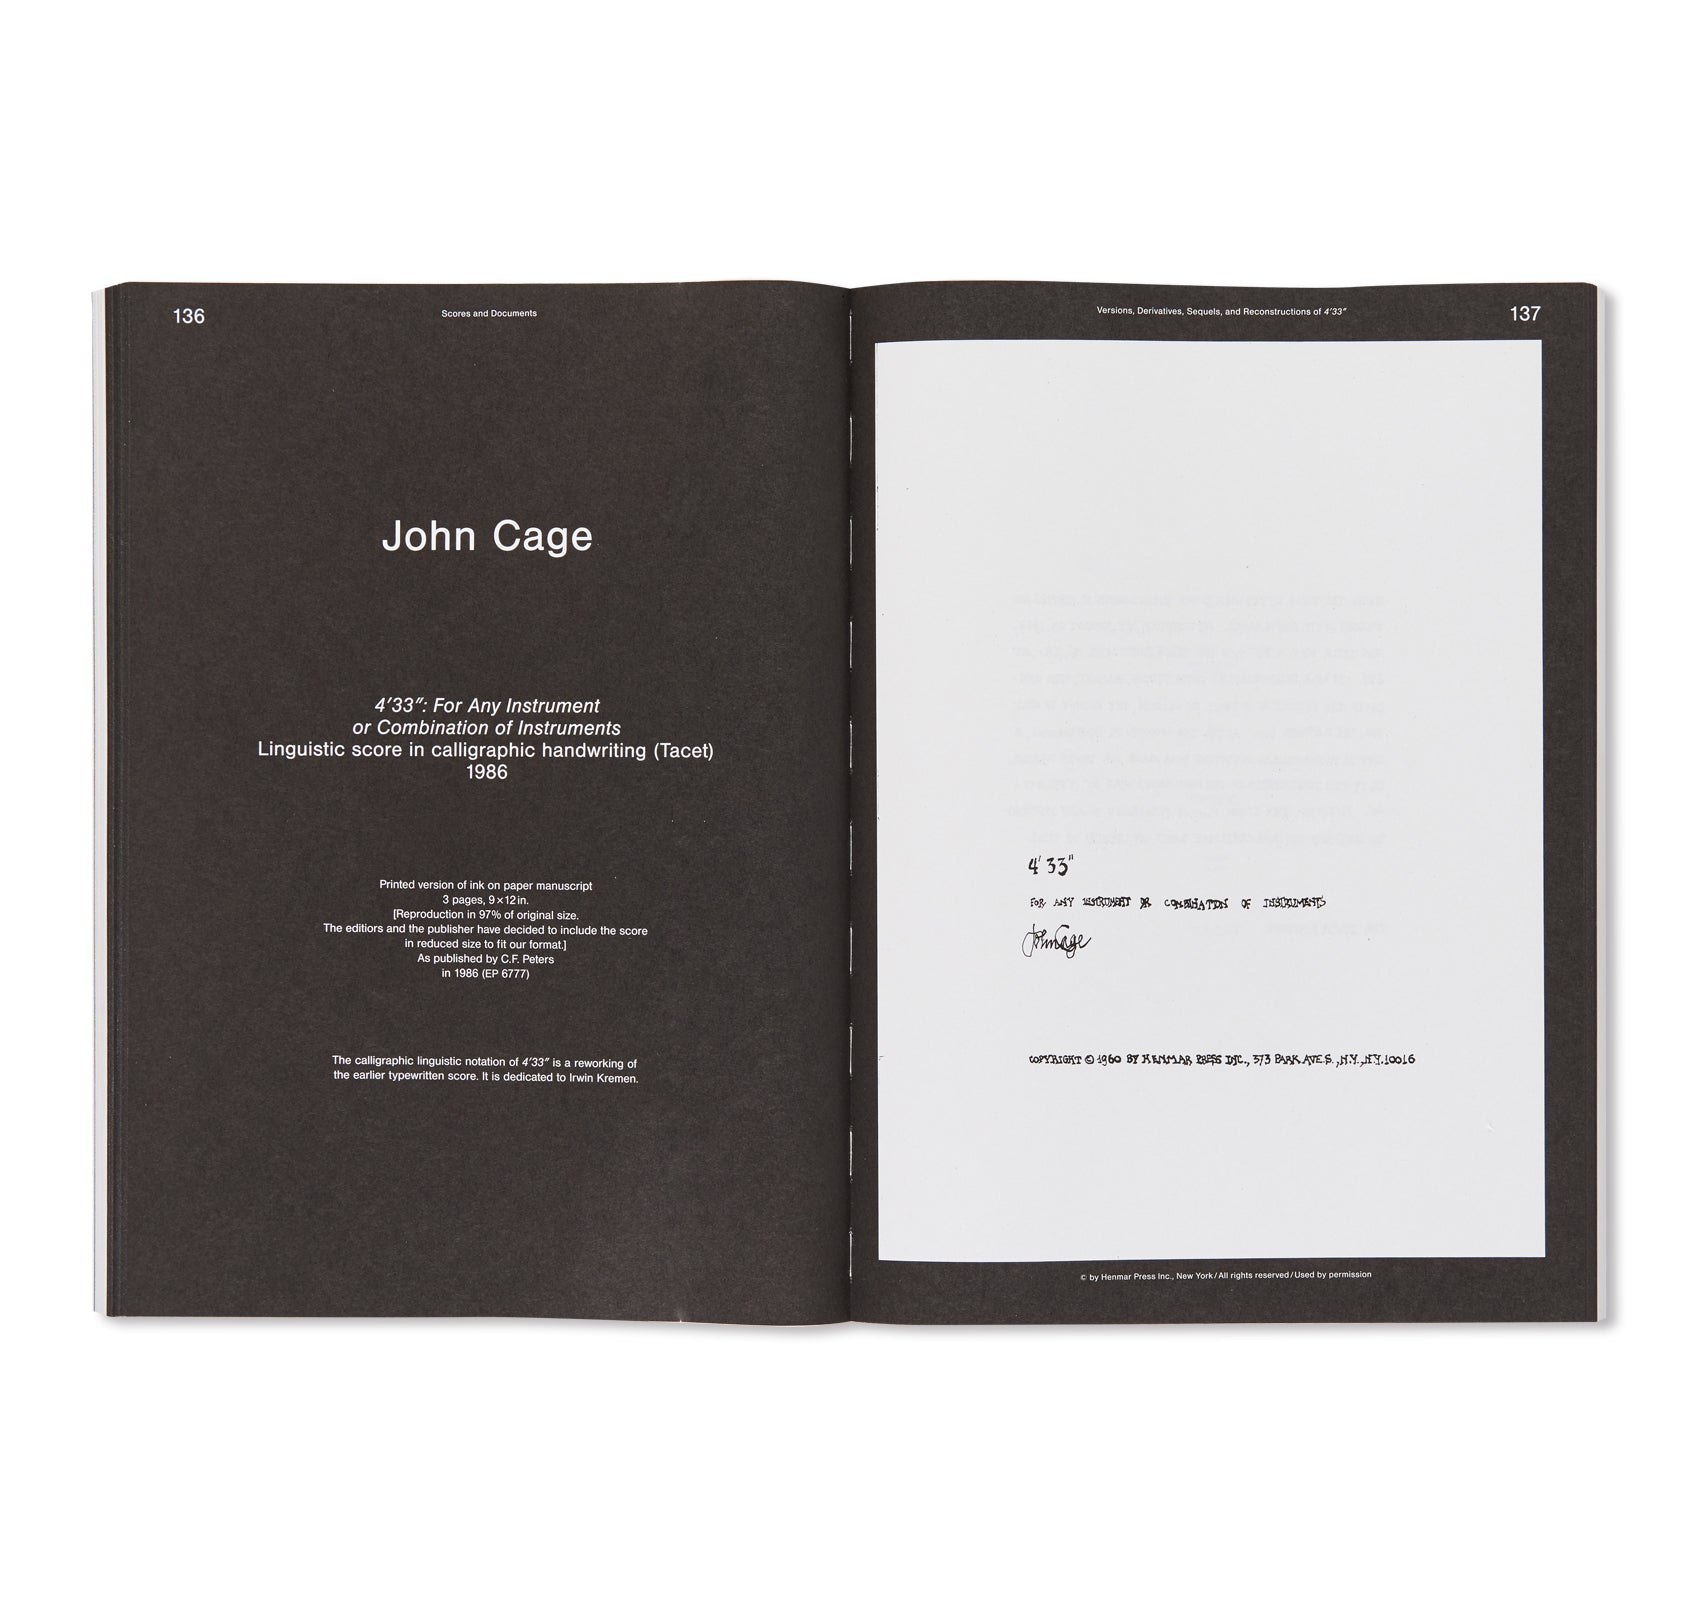 "SOUNDS LIKE SILENCE - JOHN CAGE - 4'33"" – SILENCE TODAY by Inke Arns, Dieter Daniels"